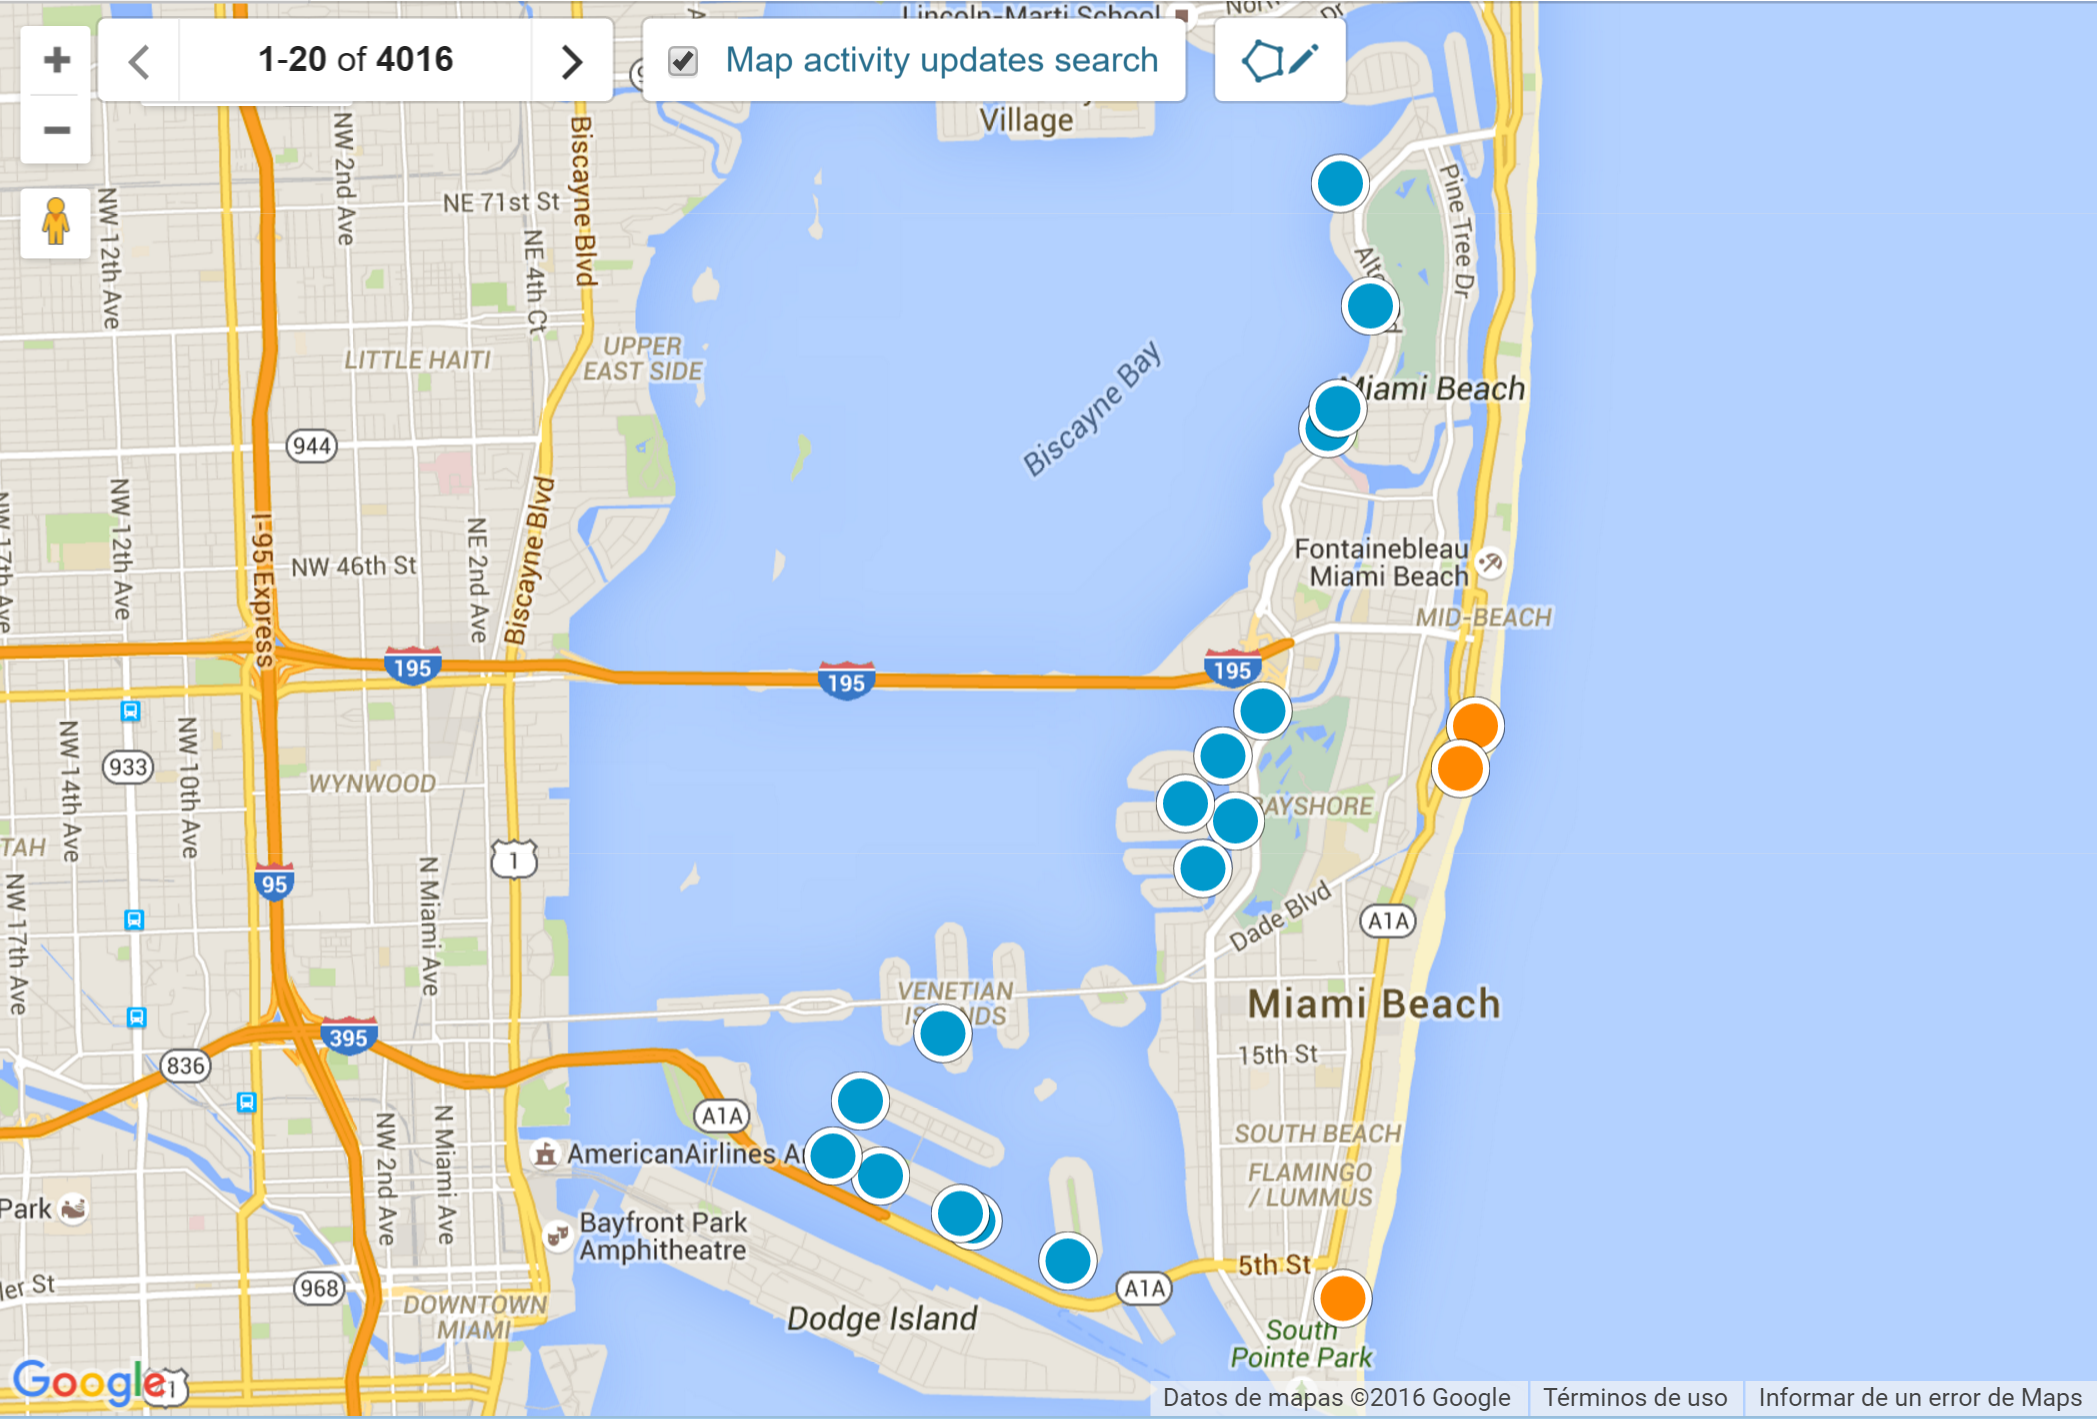 miami beach easy real estate search- fastest way to find